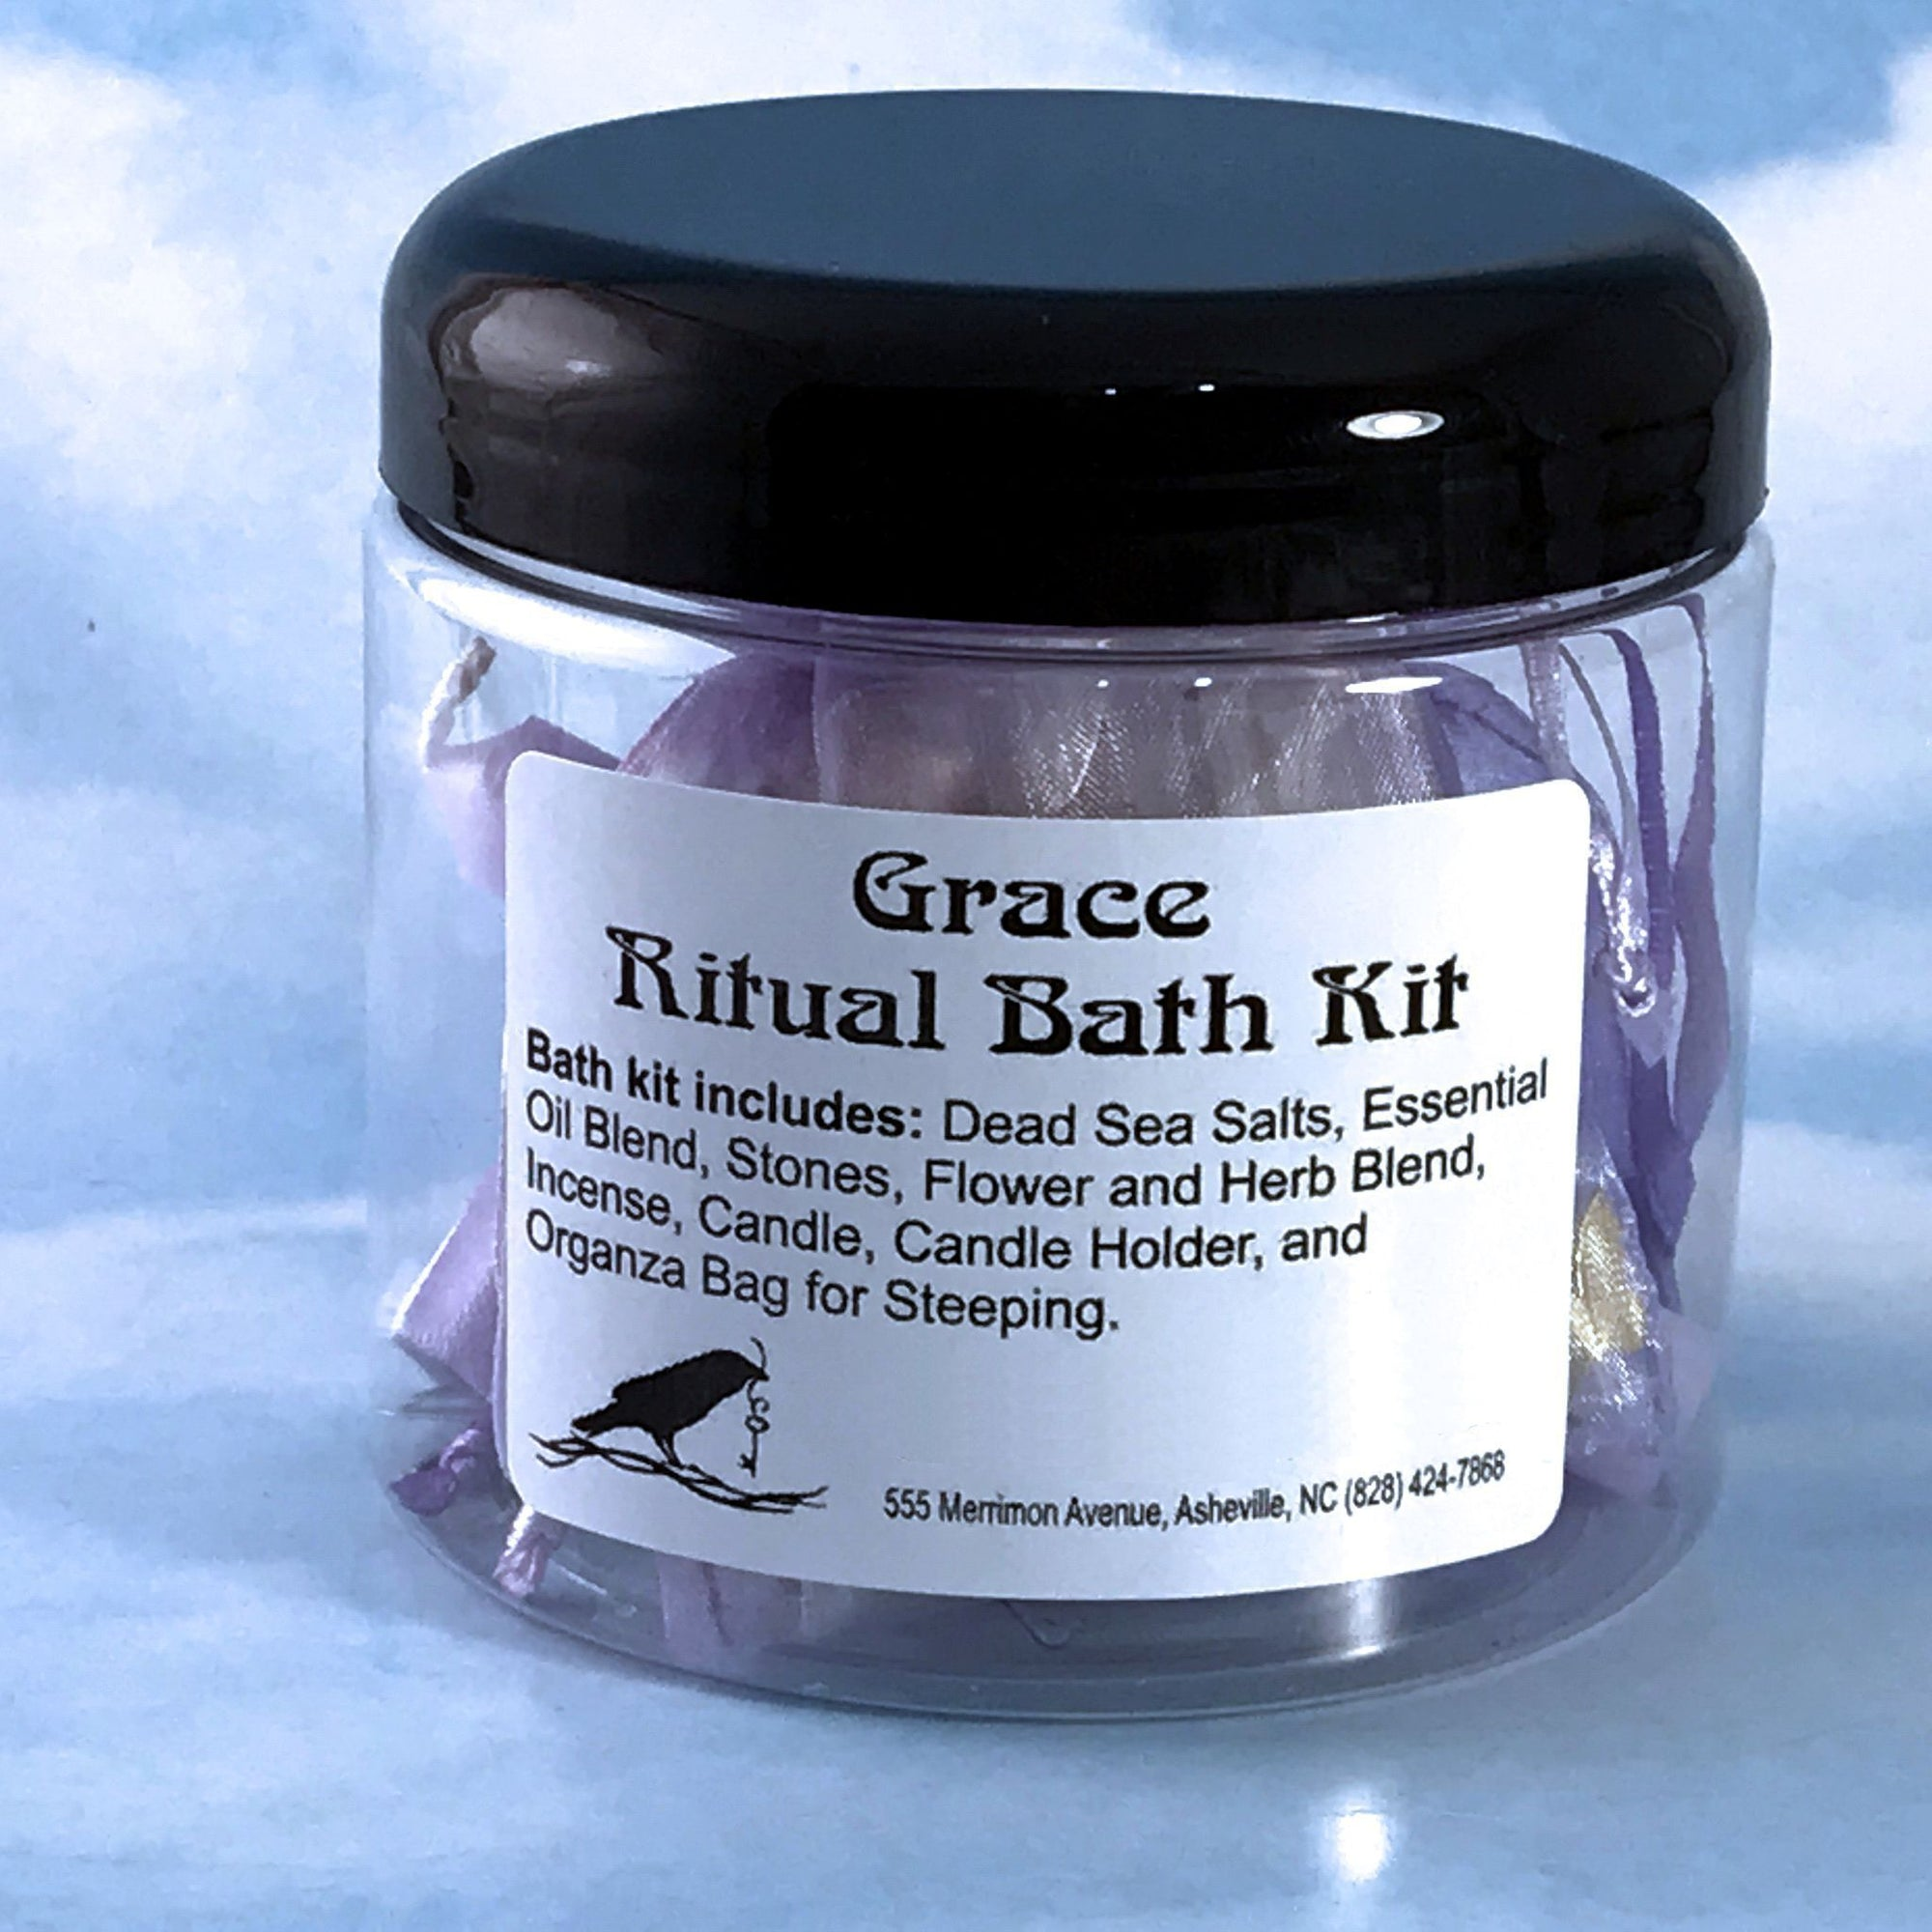 Grace Ritual Bath Kit